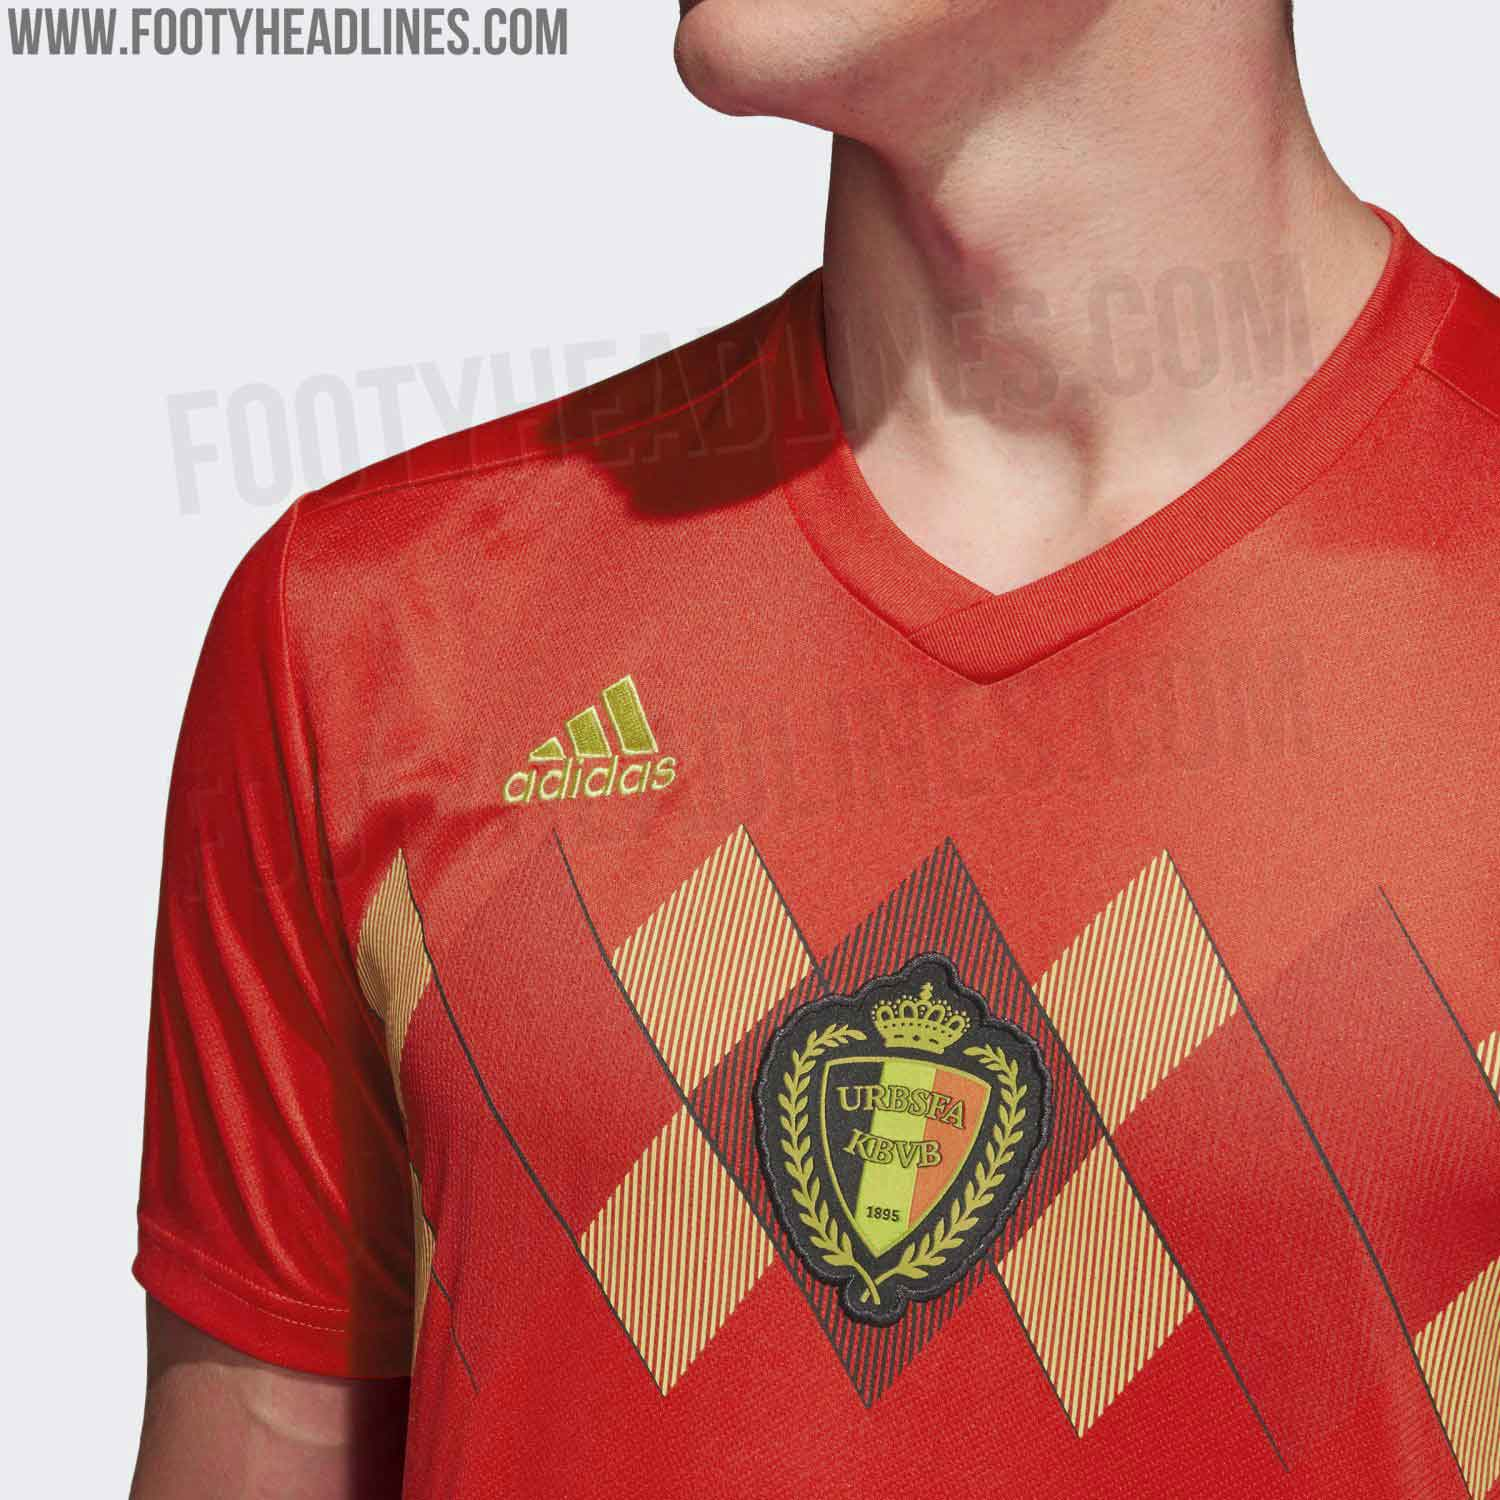 802490811 2018 World Cup Kit Overview - All 2018 World Cup Jersey Leaks ...